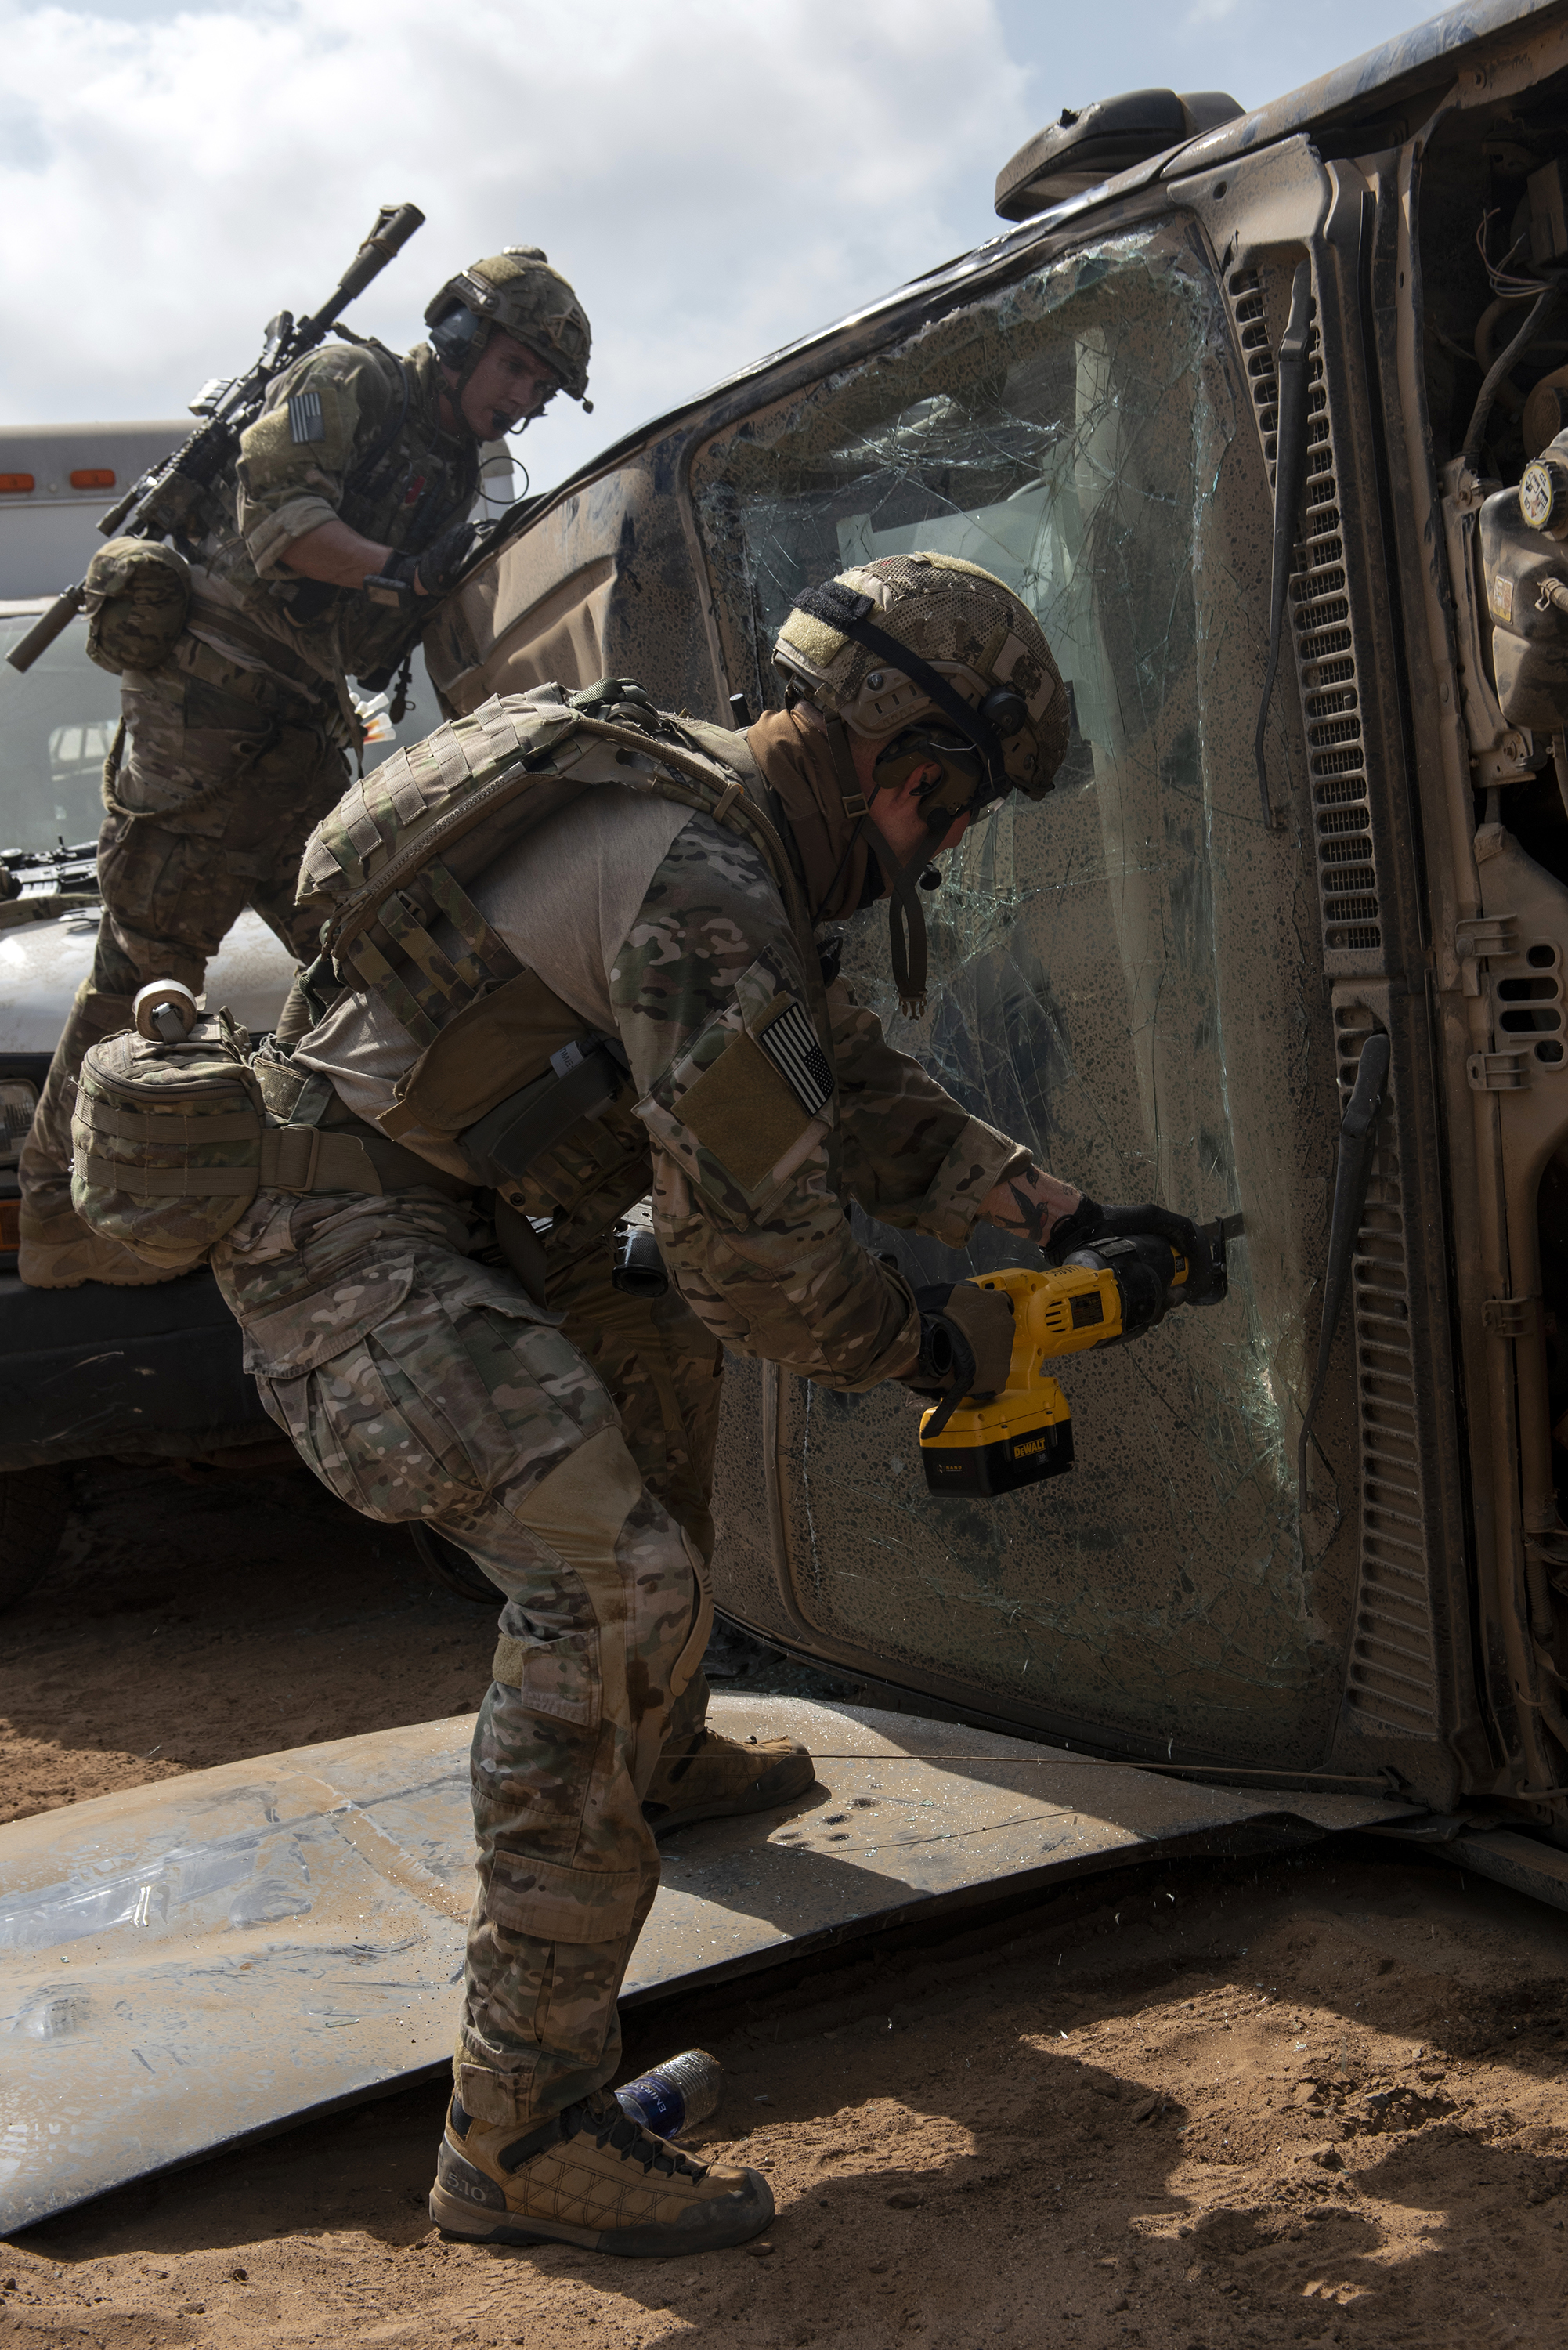 A Pararescueman from the 82nd Expeditionary Rescue Squadron, cuts through the windshield of an overturned vehicle in order to rescue a simulated casualty in Djibouti City, Djibouti, April 24, 2018. The Airmen conducted various extrication techniques during a joint mass casualty training exercise. (U.S. Air National Guard photo by Master Sgt. Sarah Mattison)